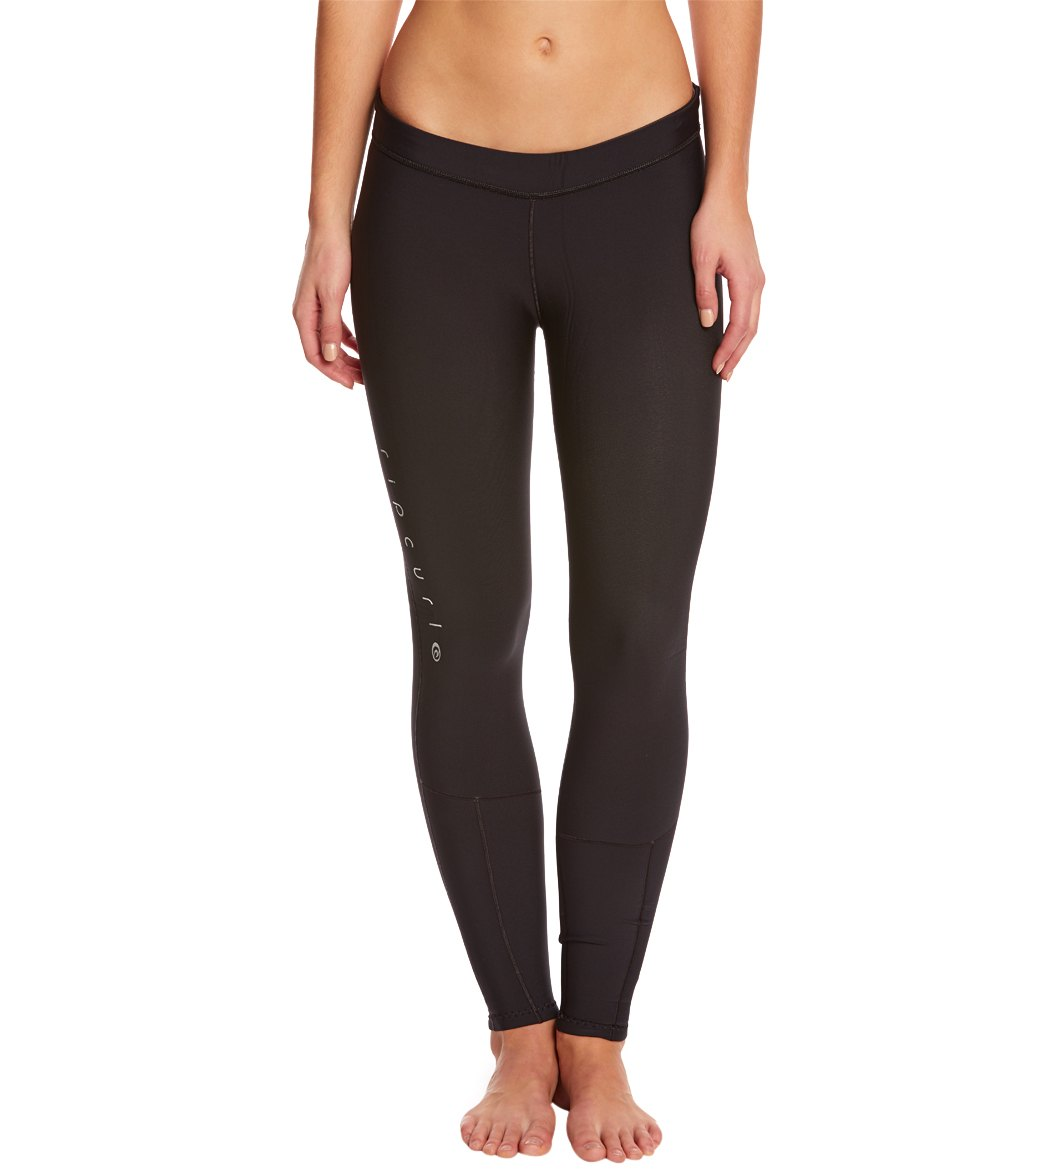 Rip Curl Women's 1mm G-Bomb Wetsuit Pant at SwimOutlet.com - Free Shipping